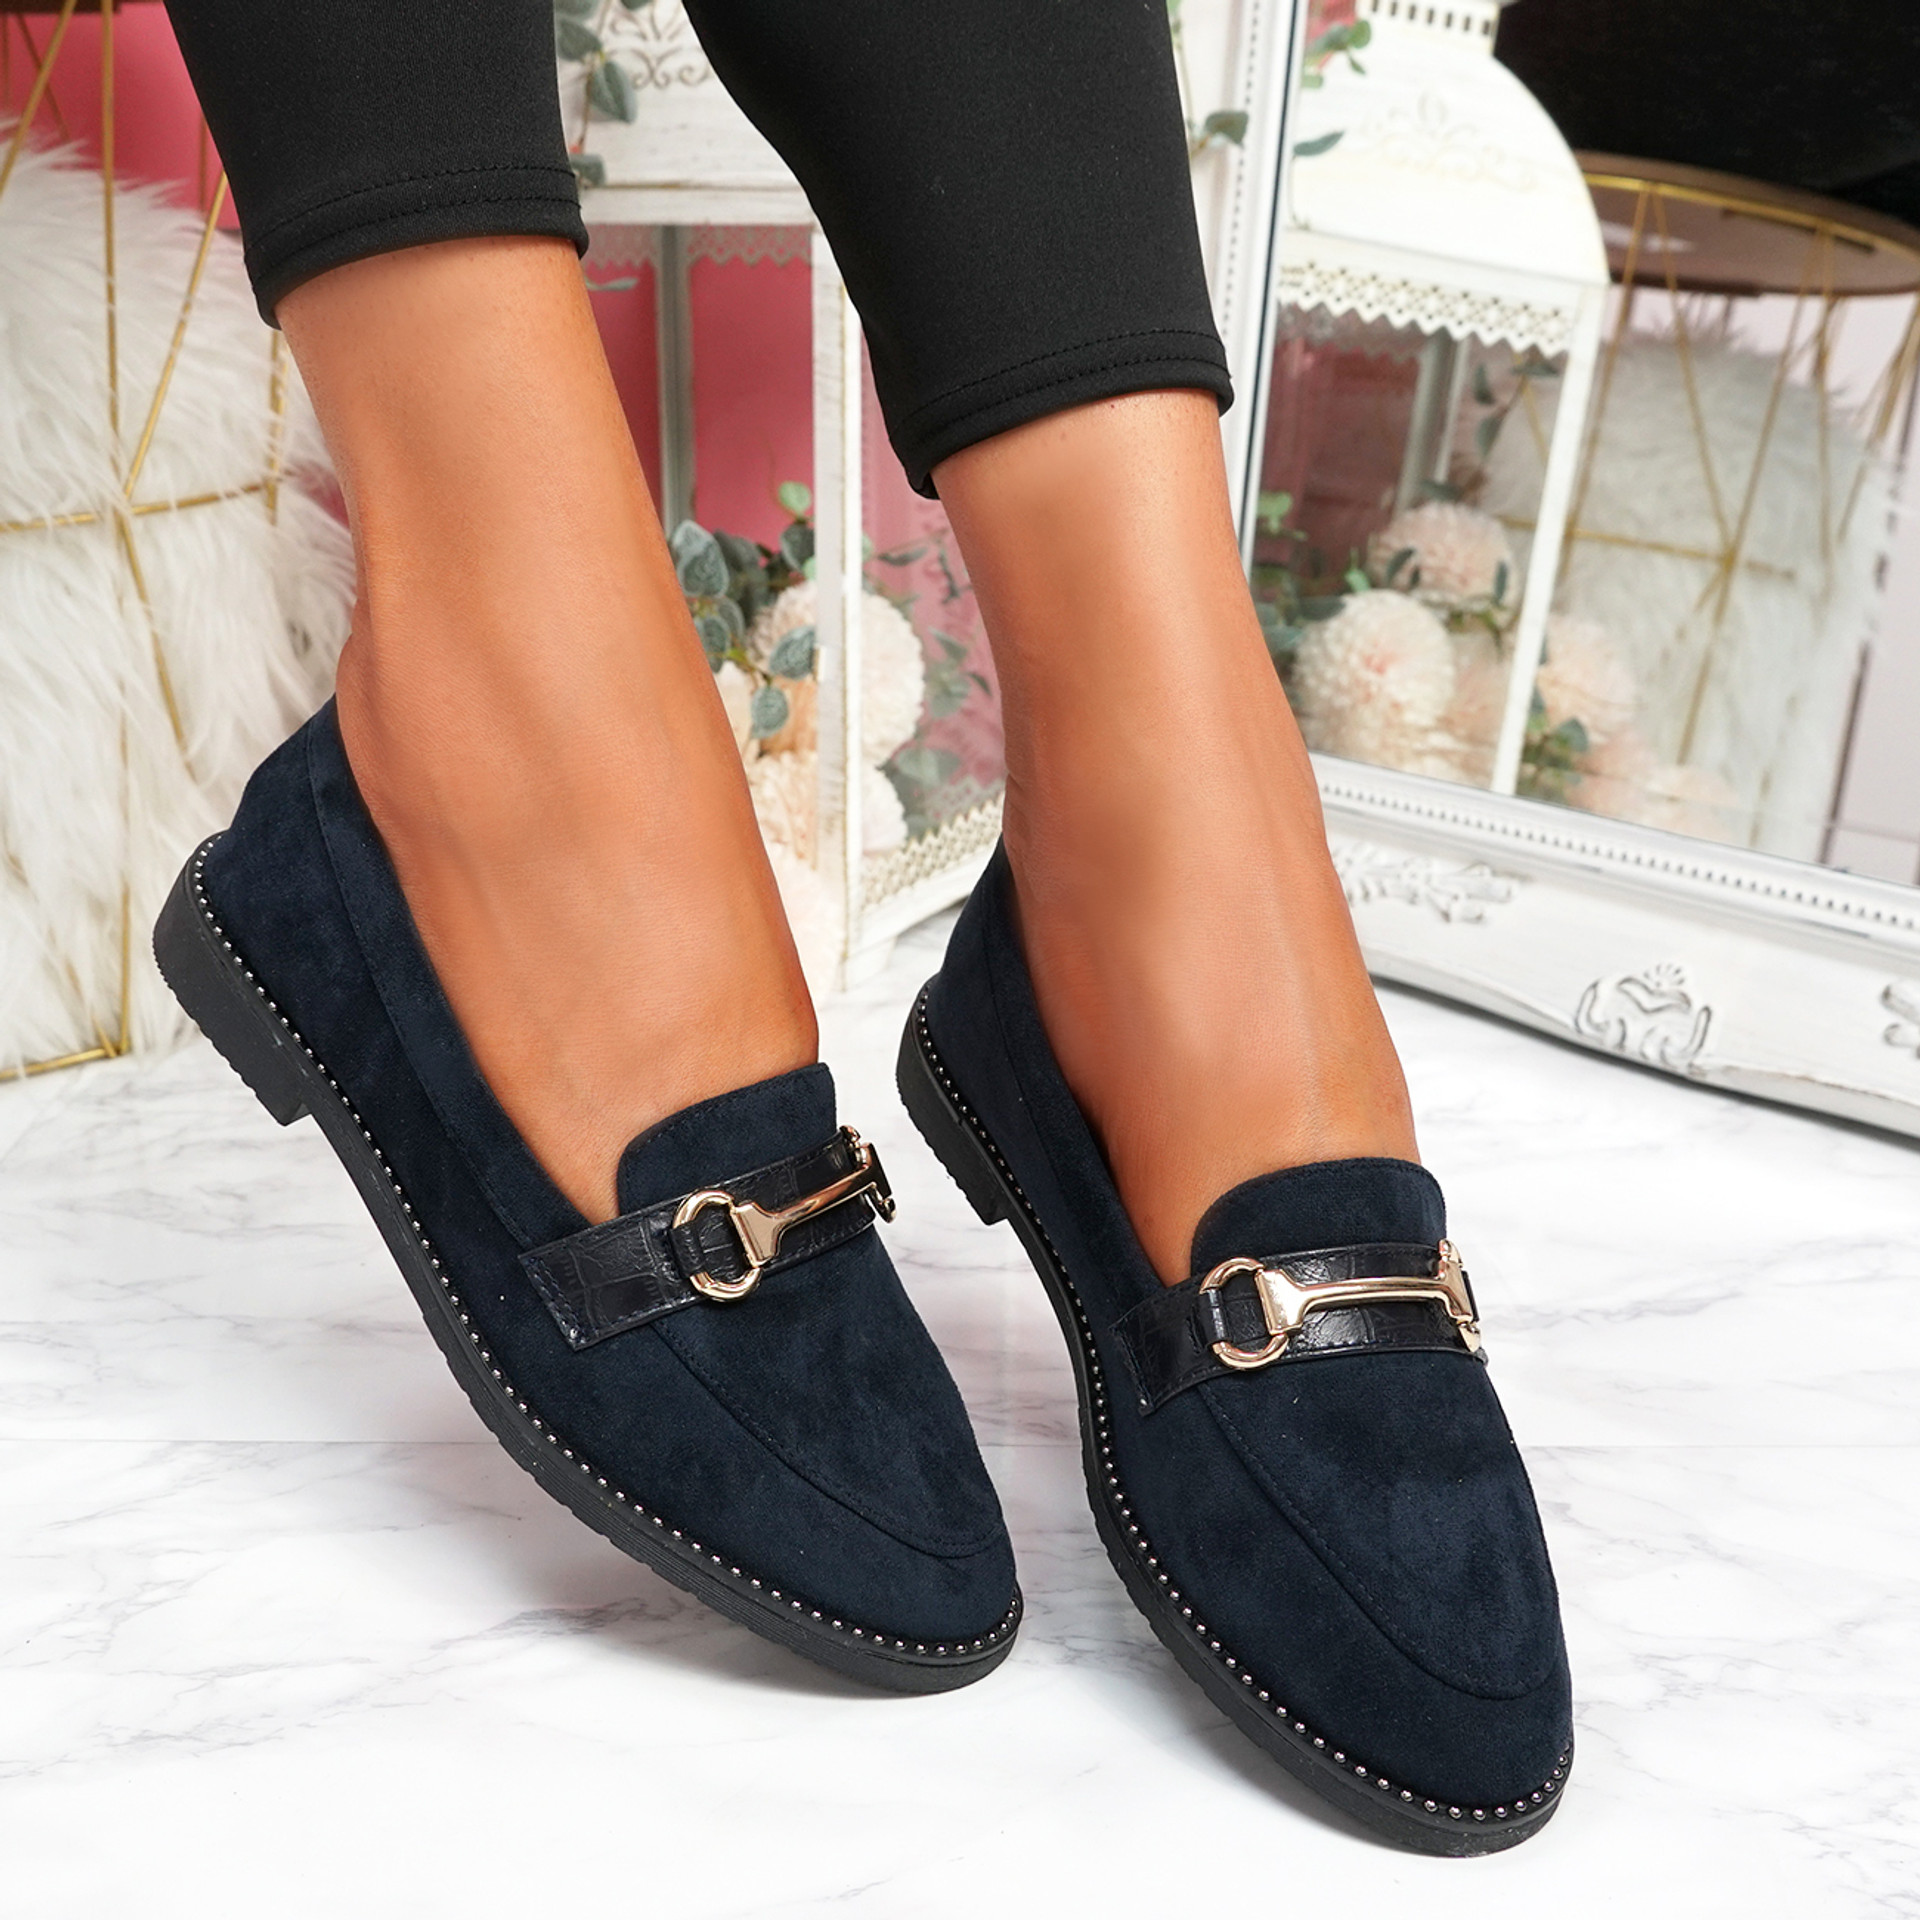 Sise Dark Blue Studded Ballerinas